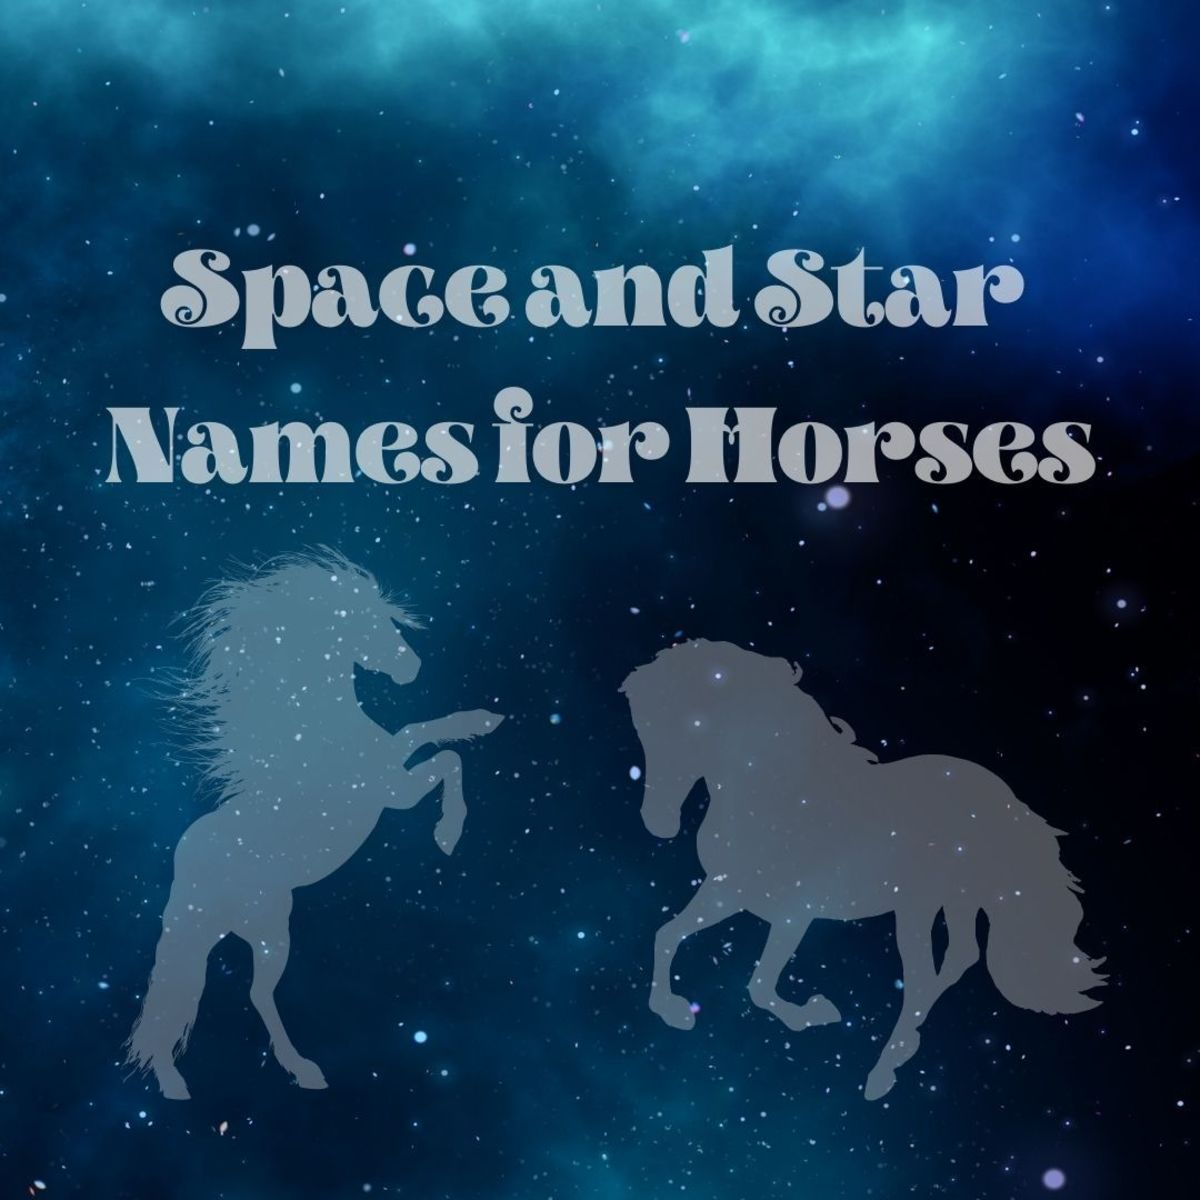 Names for horses based on stars, constellations, and other celestial bodies